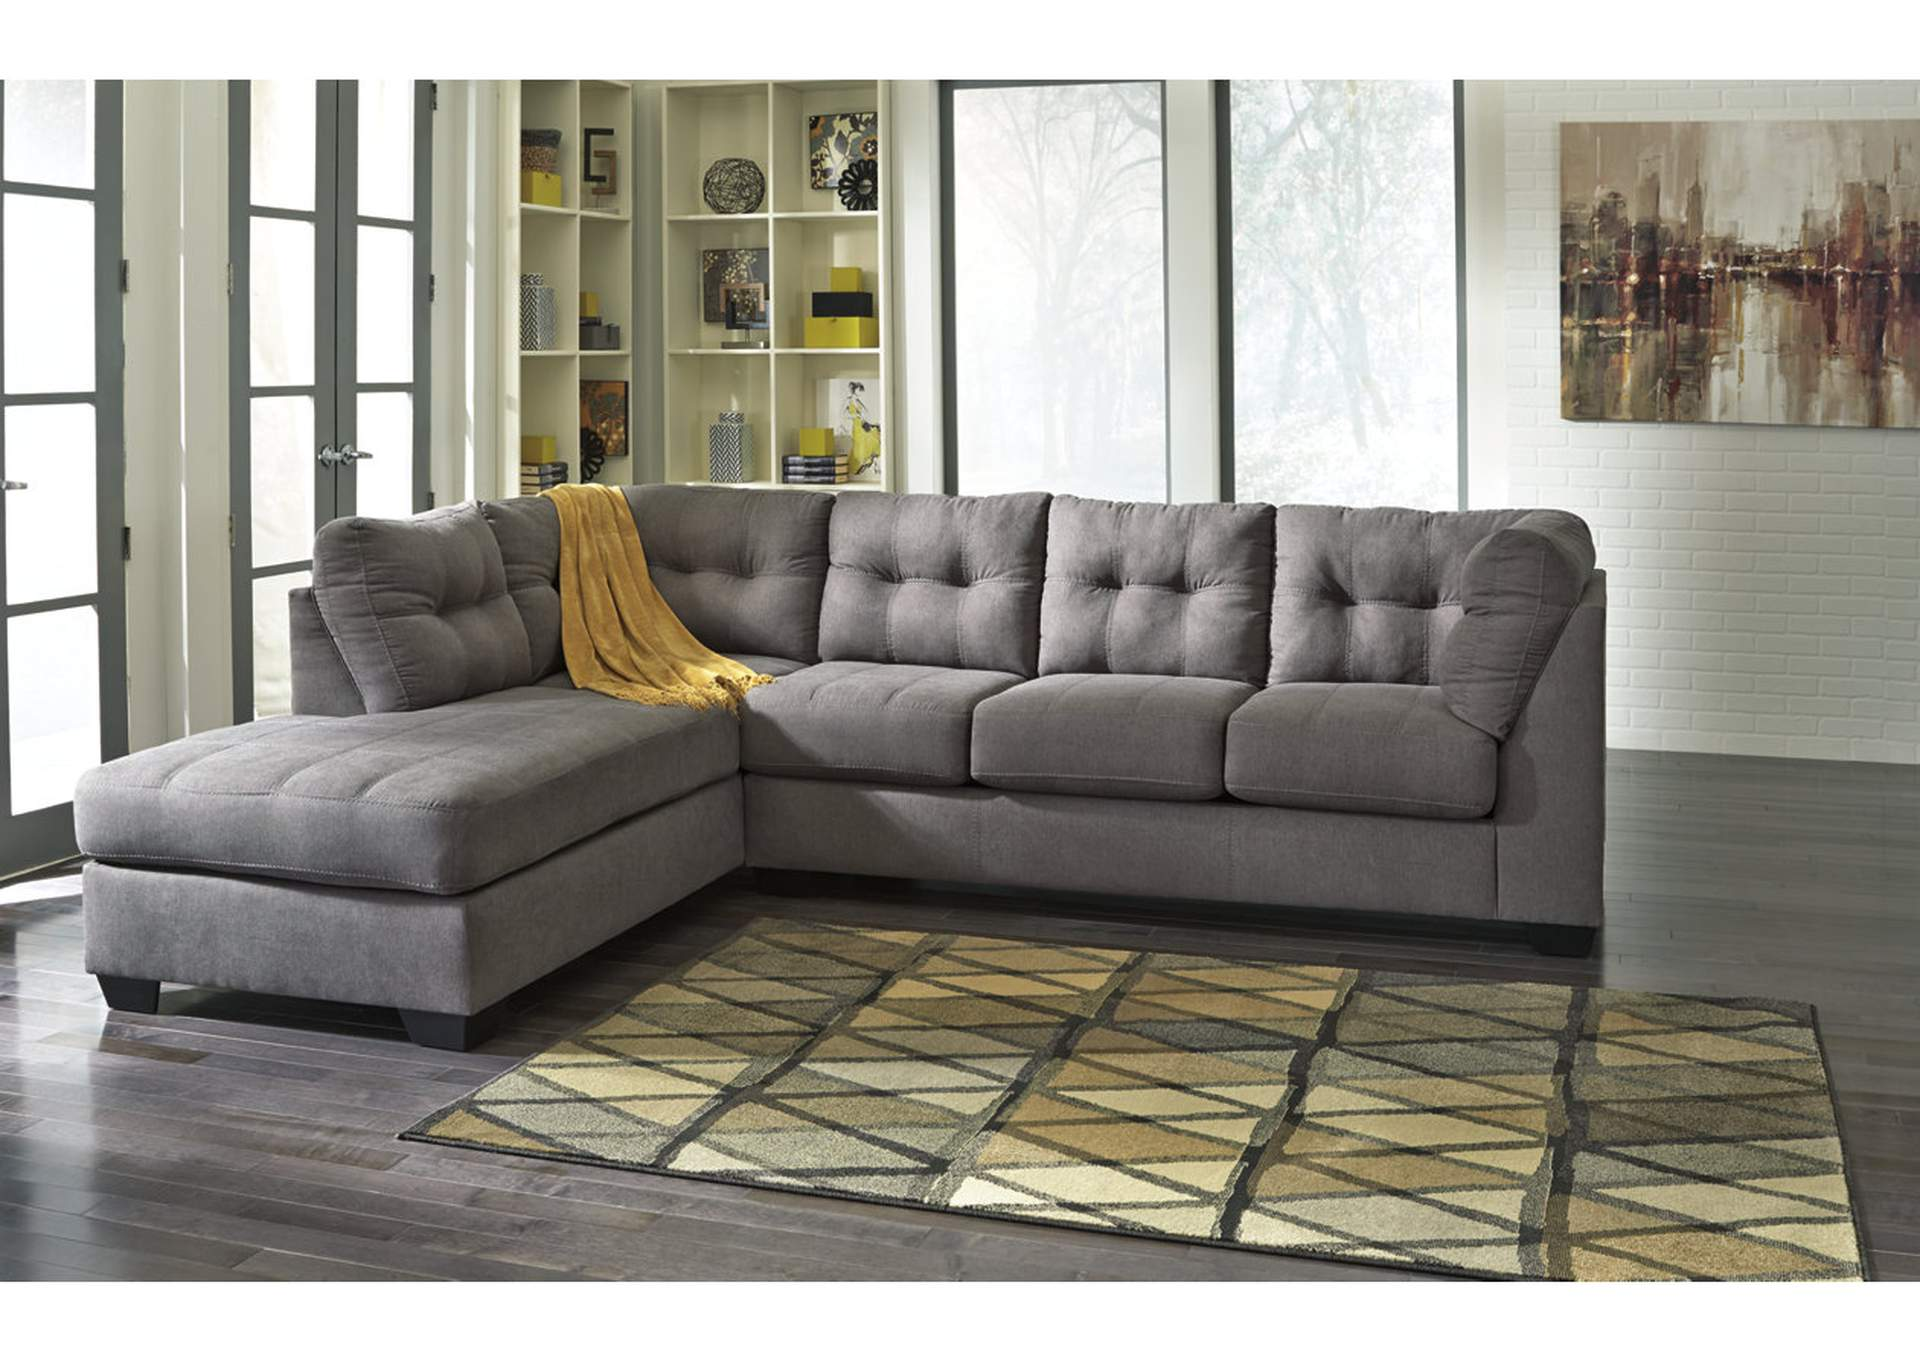 Maier Charcoal Left Arm Facing Chaise End Sectional. Premier Ashley Furniture Store in Philadelphia  PA